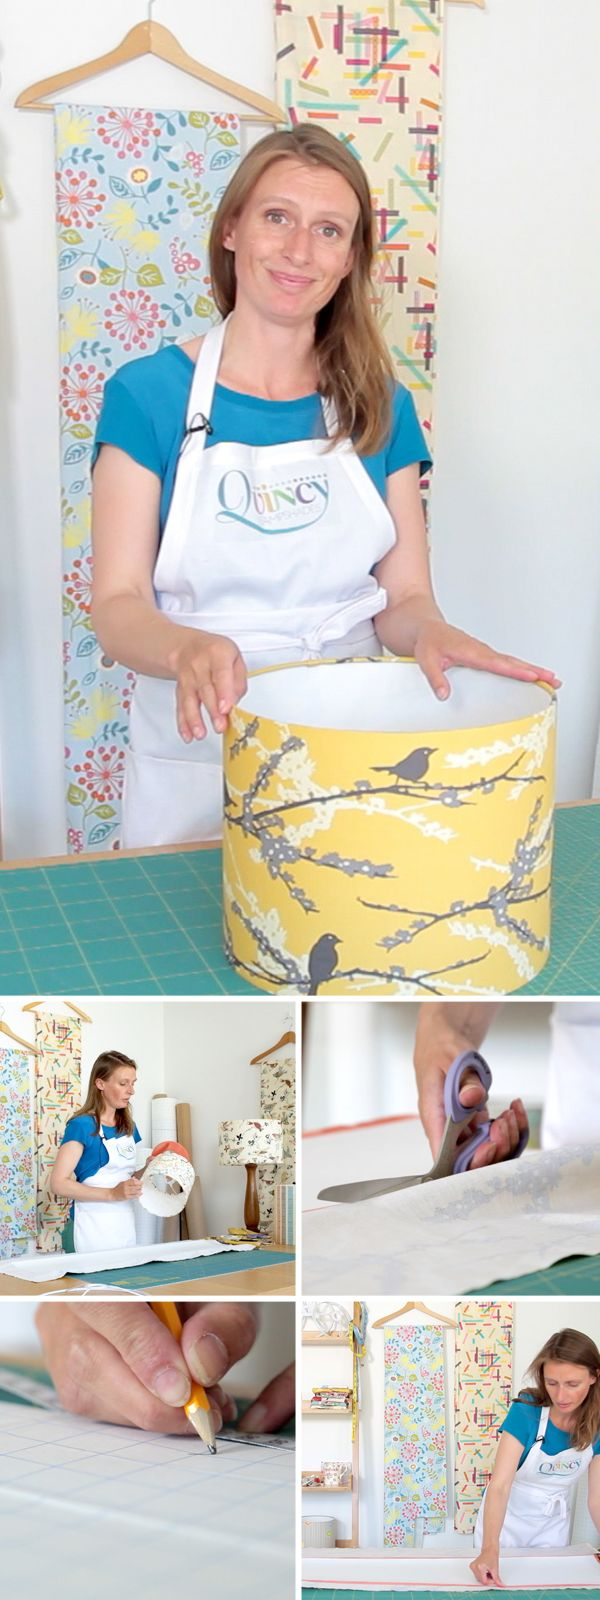 Win a lampshade kit and 50 vouchers to watch the DIY video tutorial